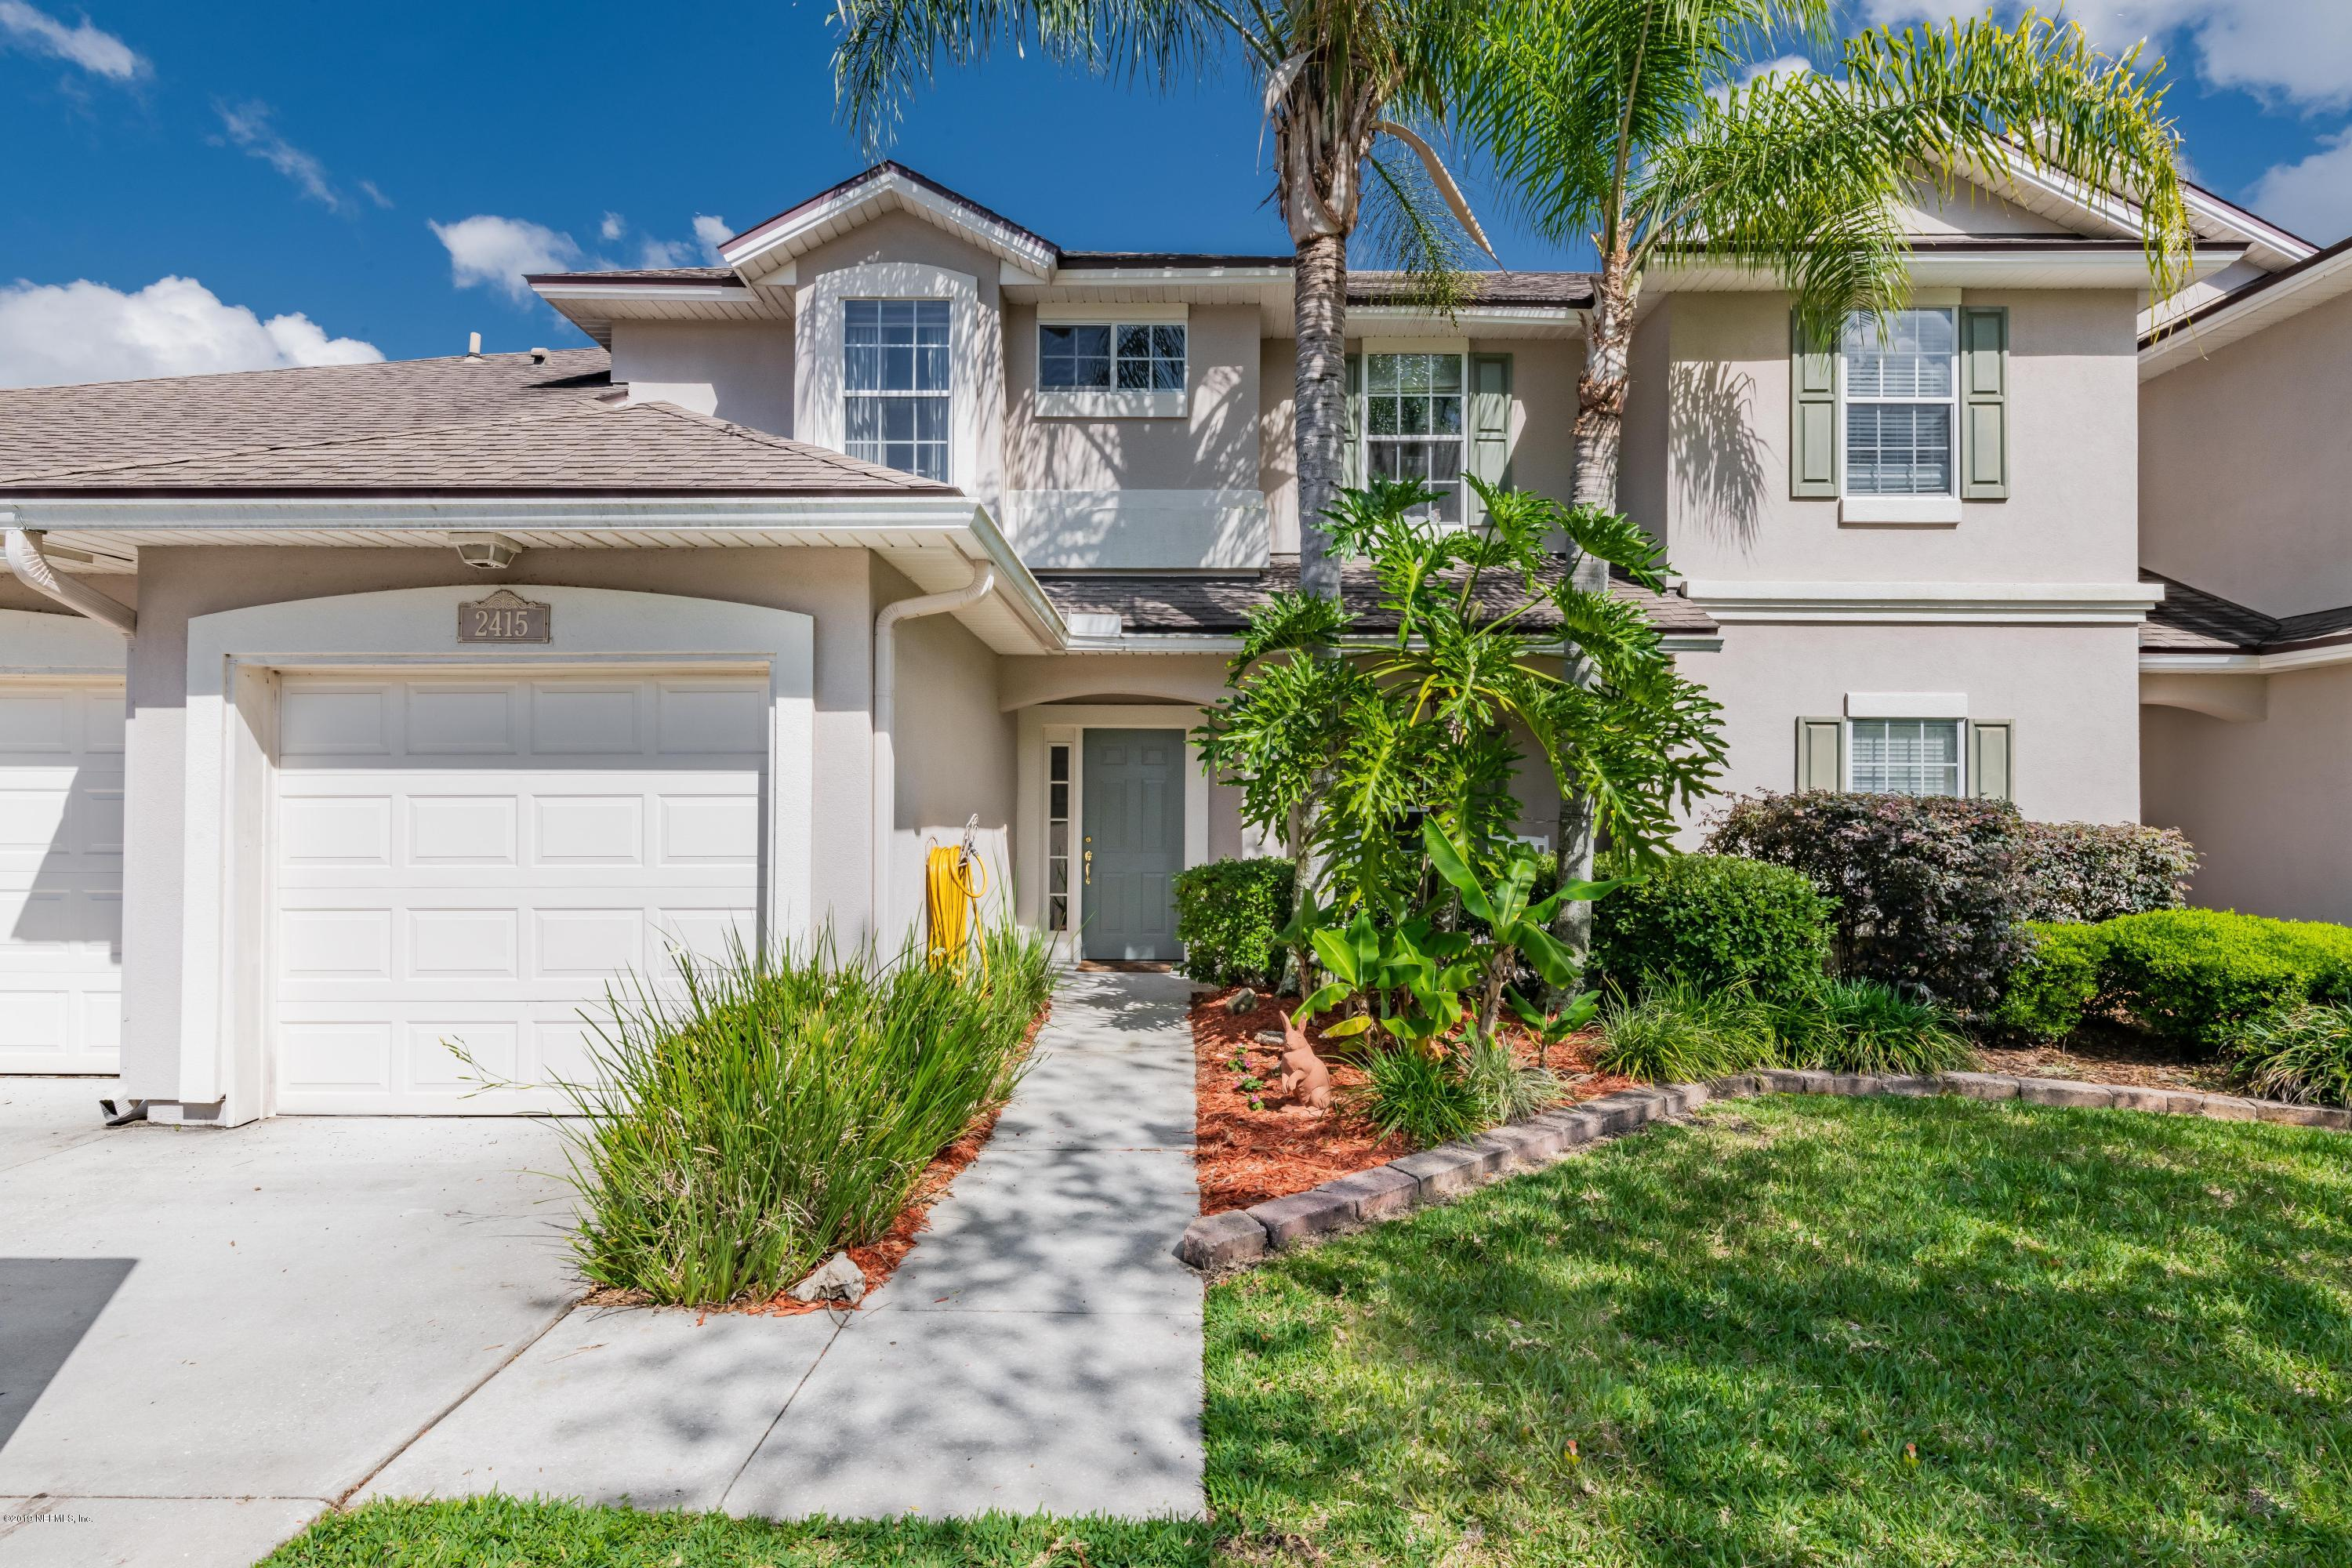 2415 OLD PINE, FLEMING ISLAND, FLORIDA 32003, 3 Bedrooms Bedrooms, ,2 BathroomsBathrooms,Residential - townhome,For sale,OLD PINE,989729